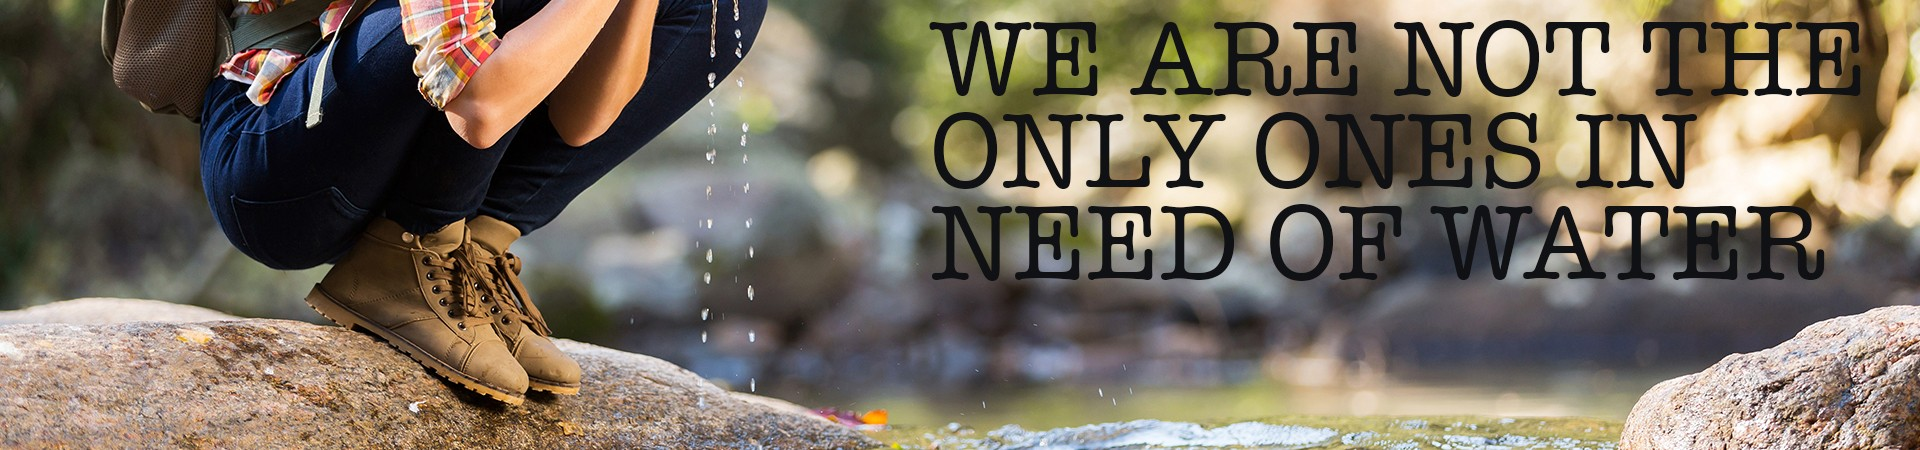 we-are-not-the-only-ones-that-are-in-need-of-water